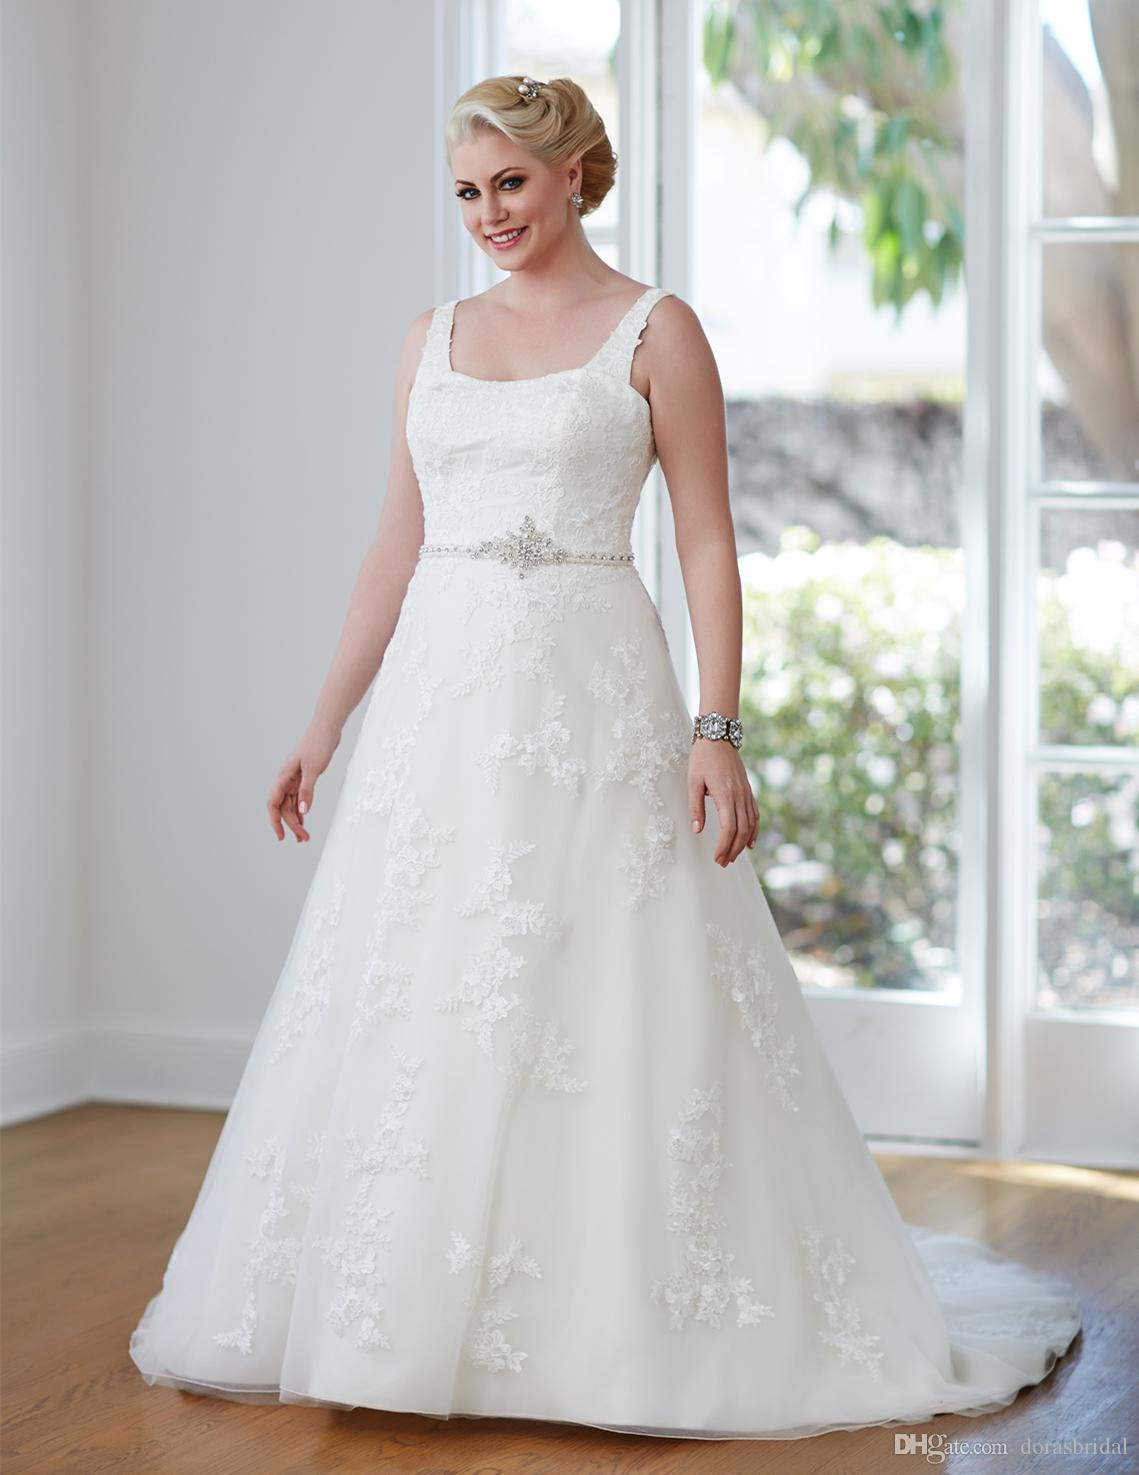 Plus Size Wedding Dress With Square Neck A-Line Tulle Court Train ...